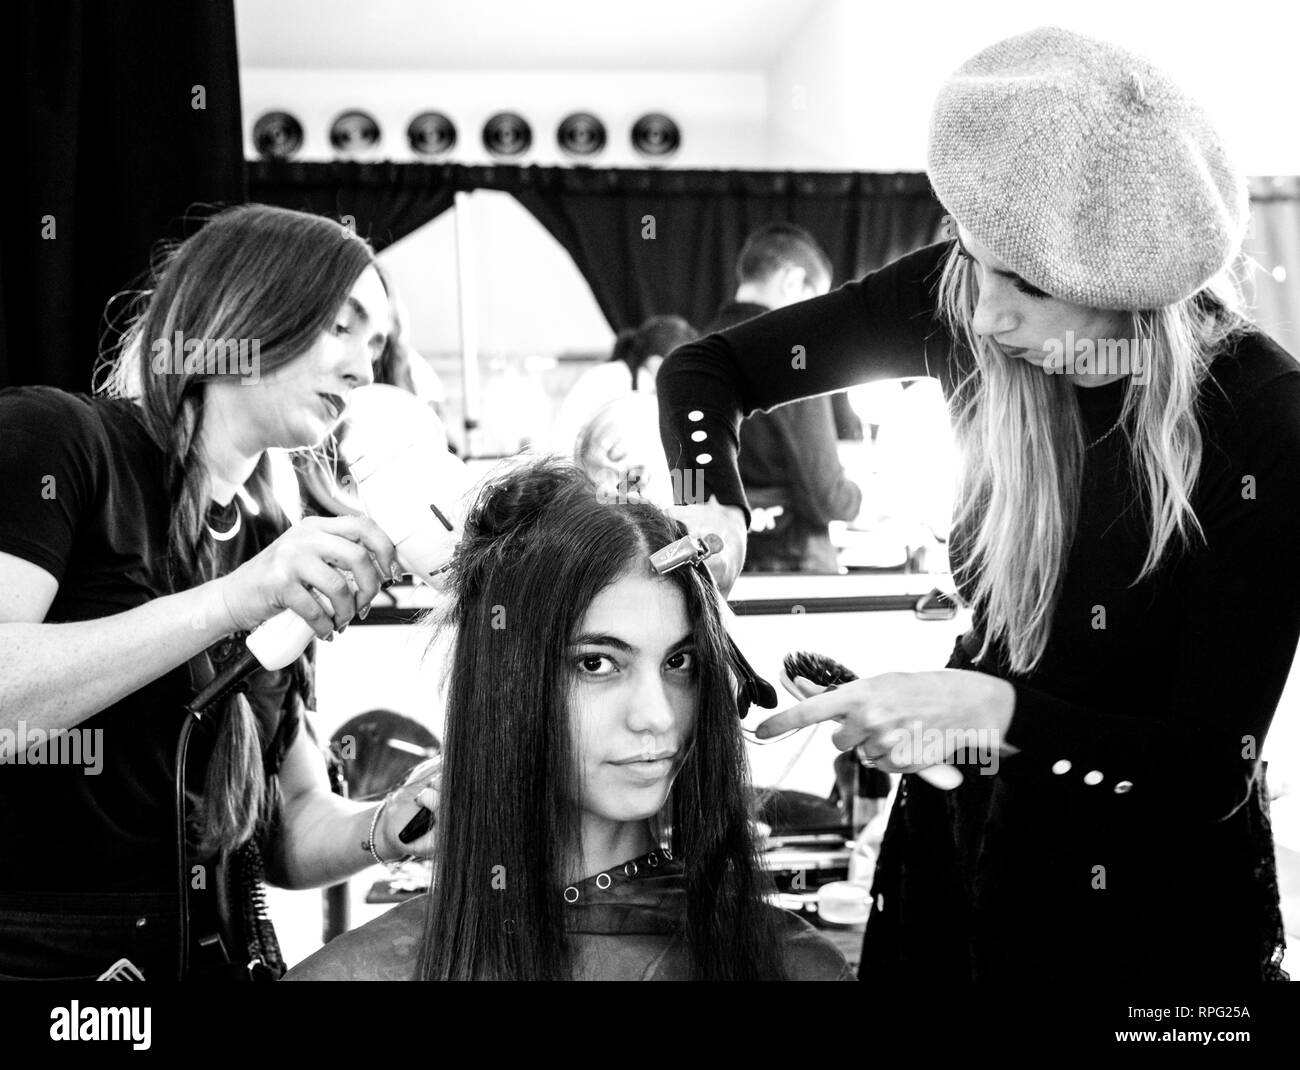 New York, NY - February 08, 2019: A model prepares backstage for the Cushnie Fall Winter 2019 fashion show during New York Fashion Week Stock Photo